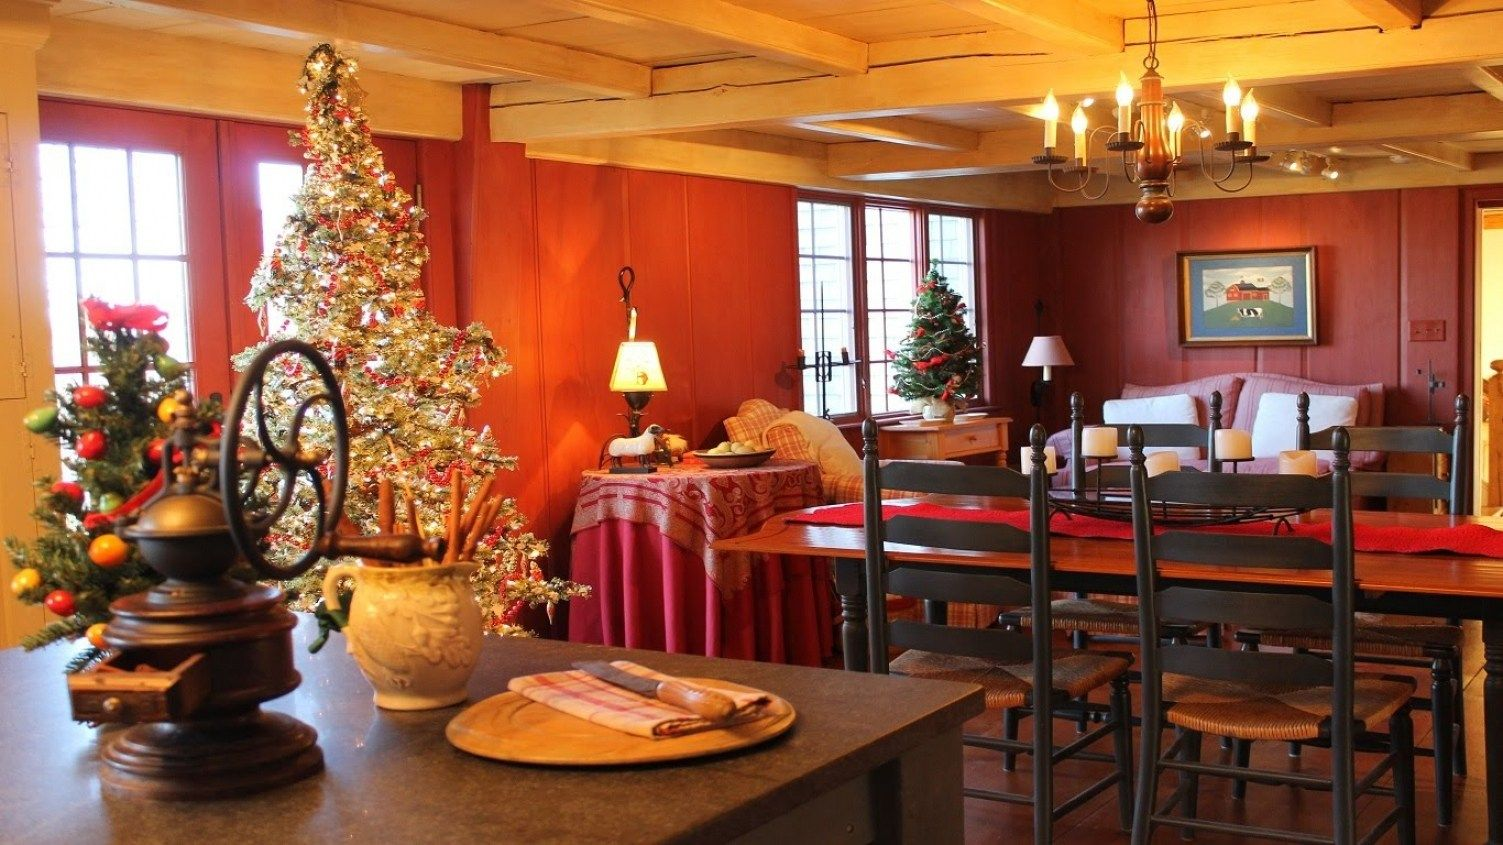 30 Christmas Decorating Ideas For The Kitchen | Christmas kitchen ...